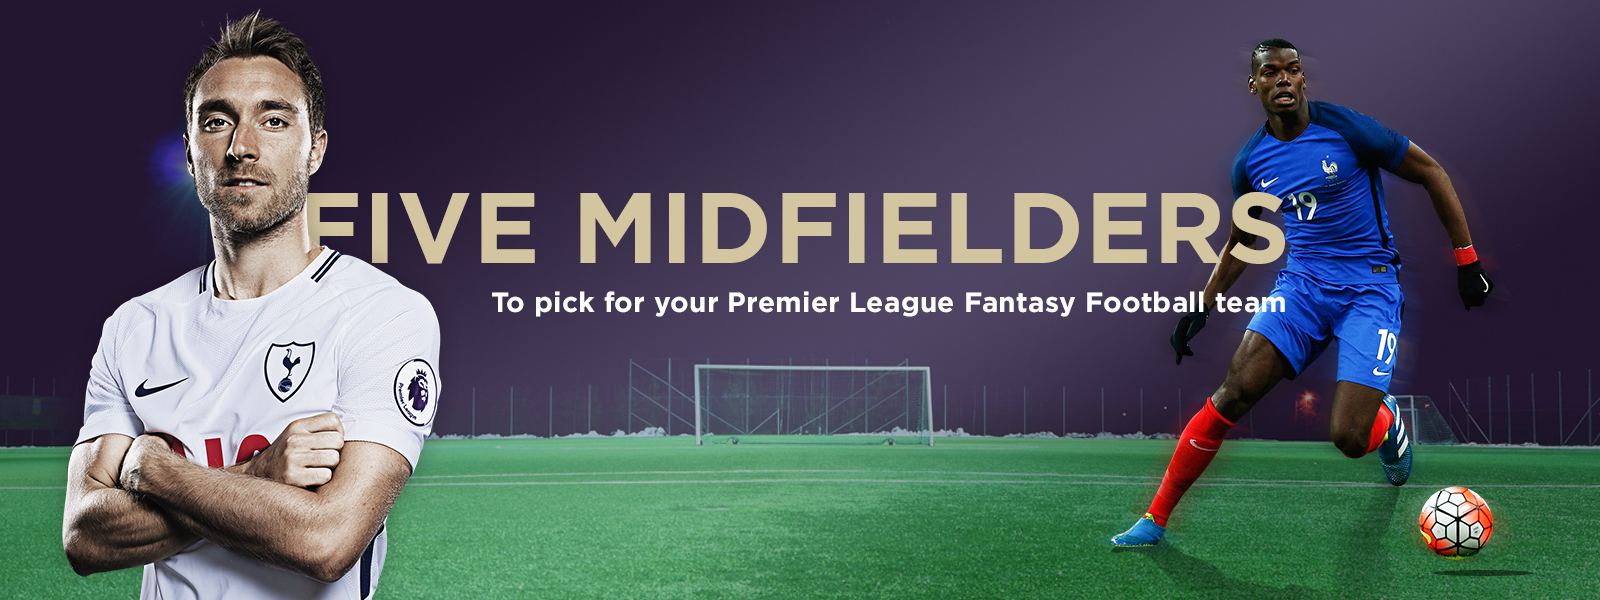 Five midfielders to pick for your Official Fantasy Premier League Football team